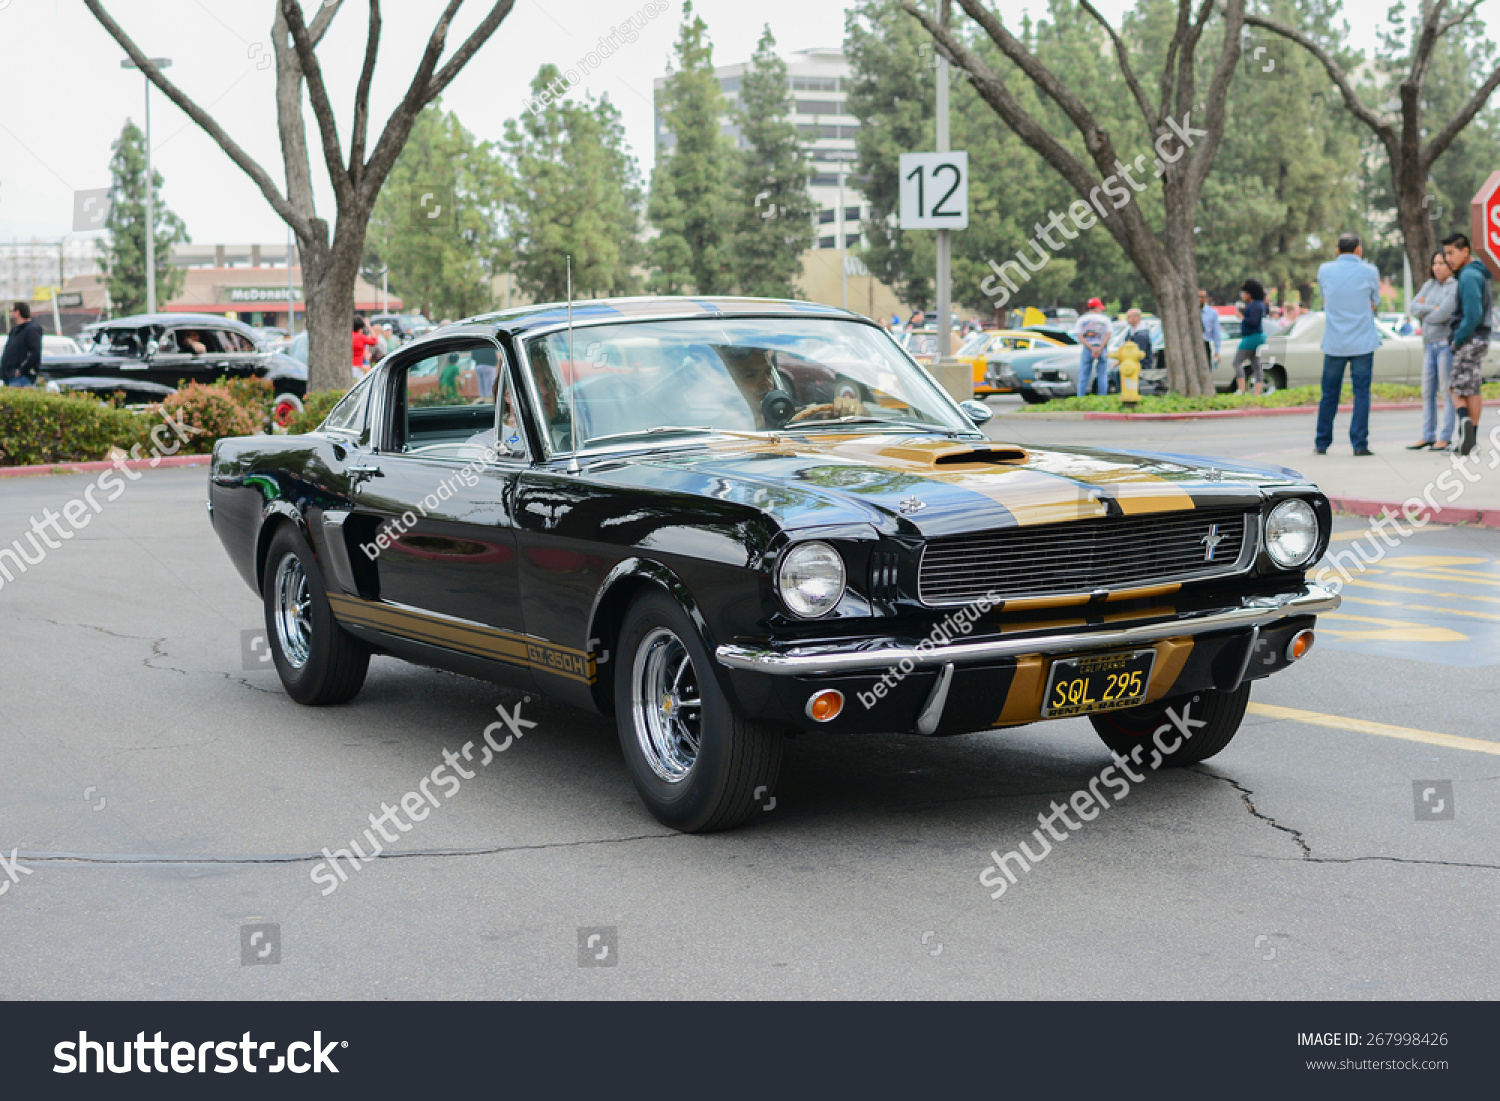 woodland hills ca abril 5 2015 ford mustang classic. Black Bedroom Furniture Sets. Home Design Ideas